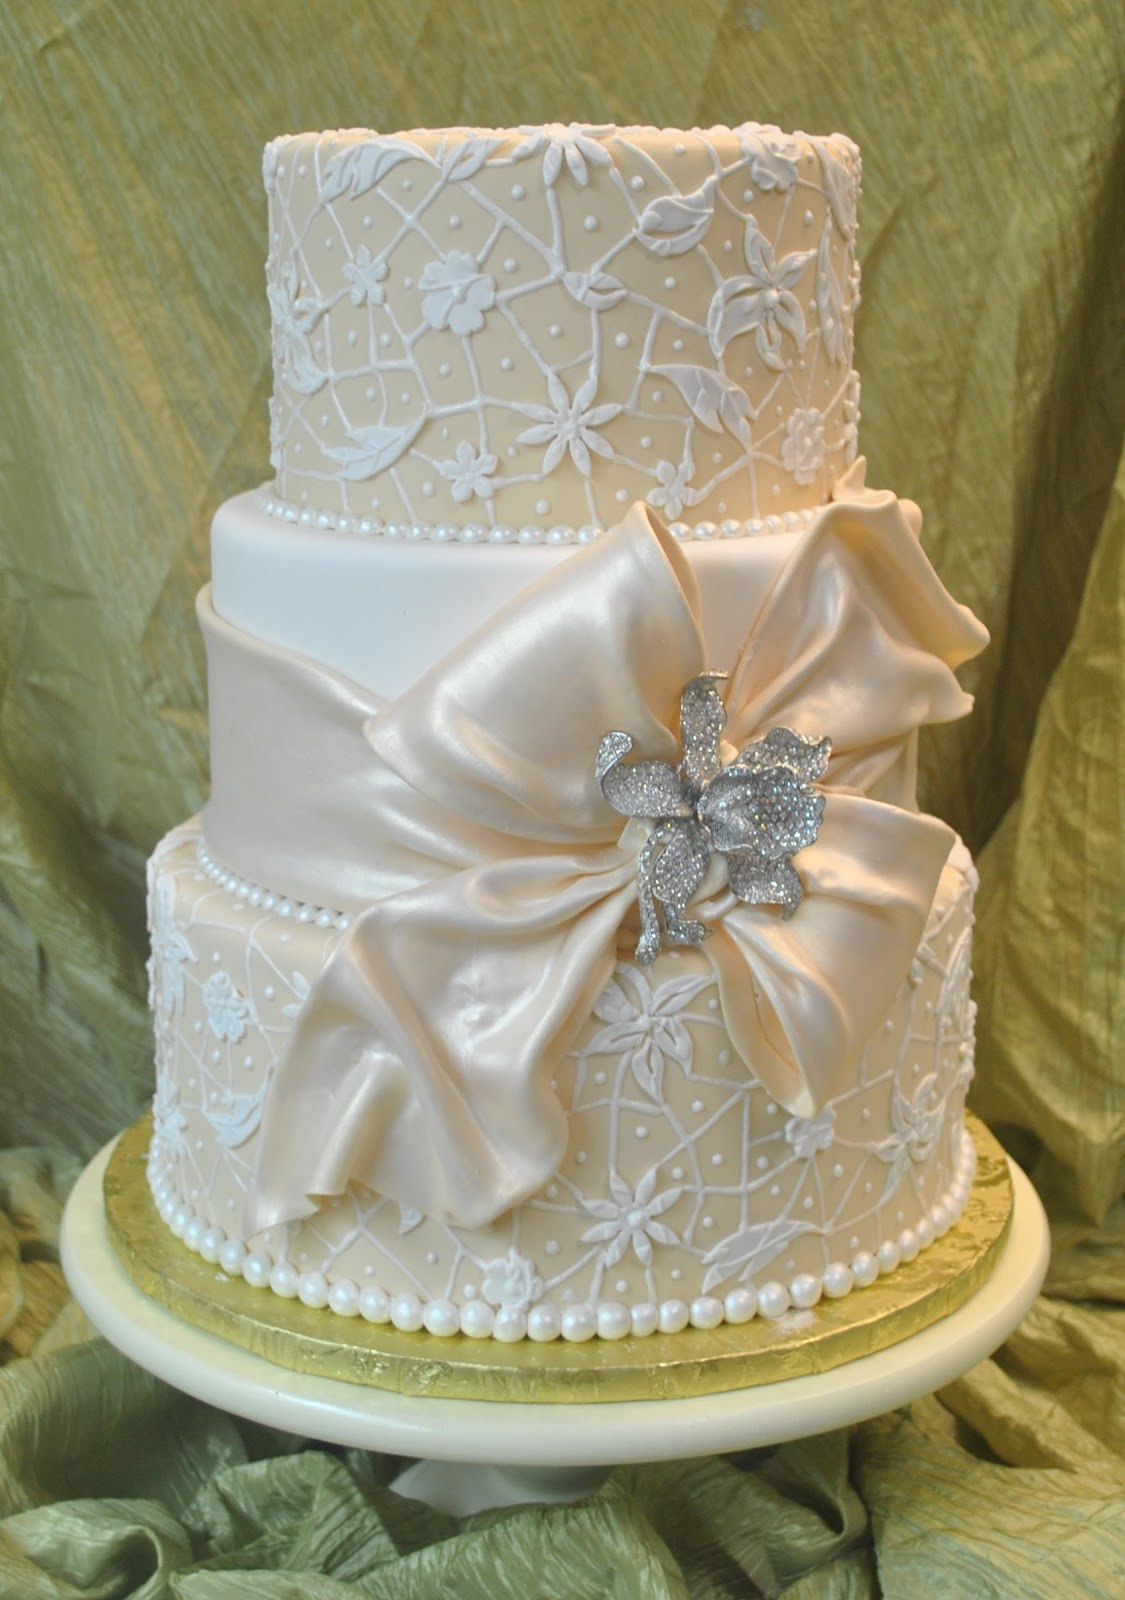 Cake Design Vintage : The Cake Zone: Theme Wedding Cake Ideas for 2012